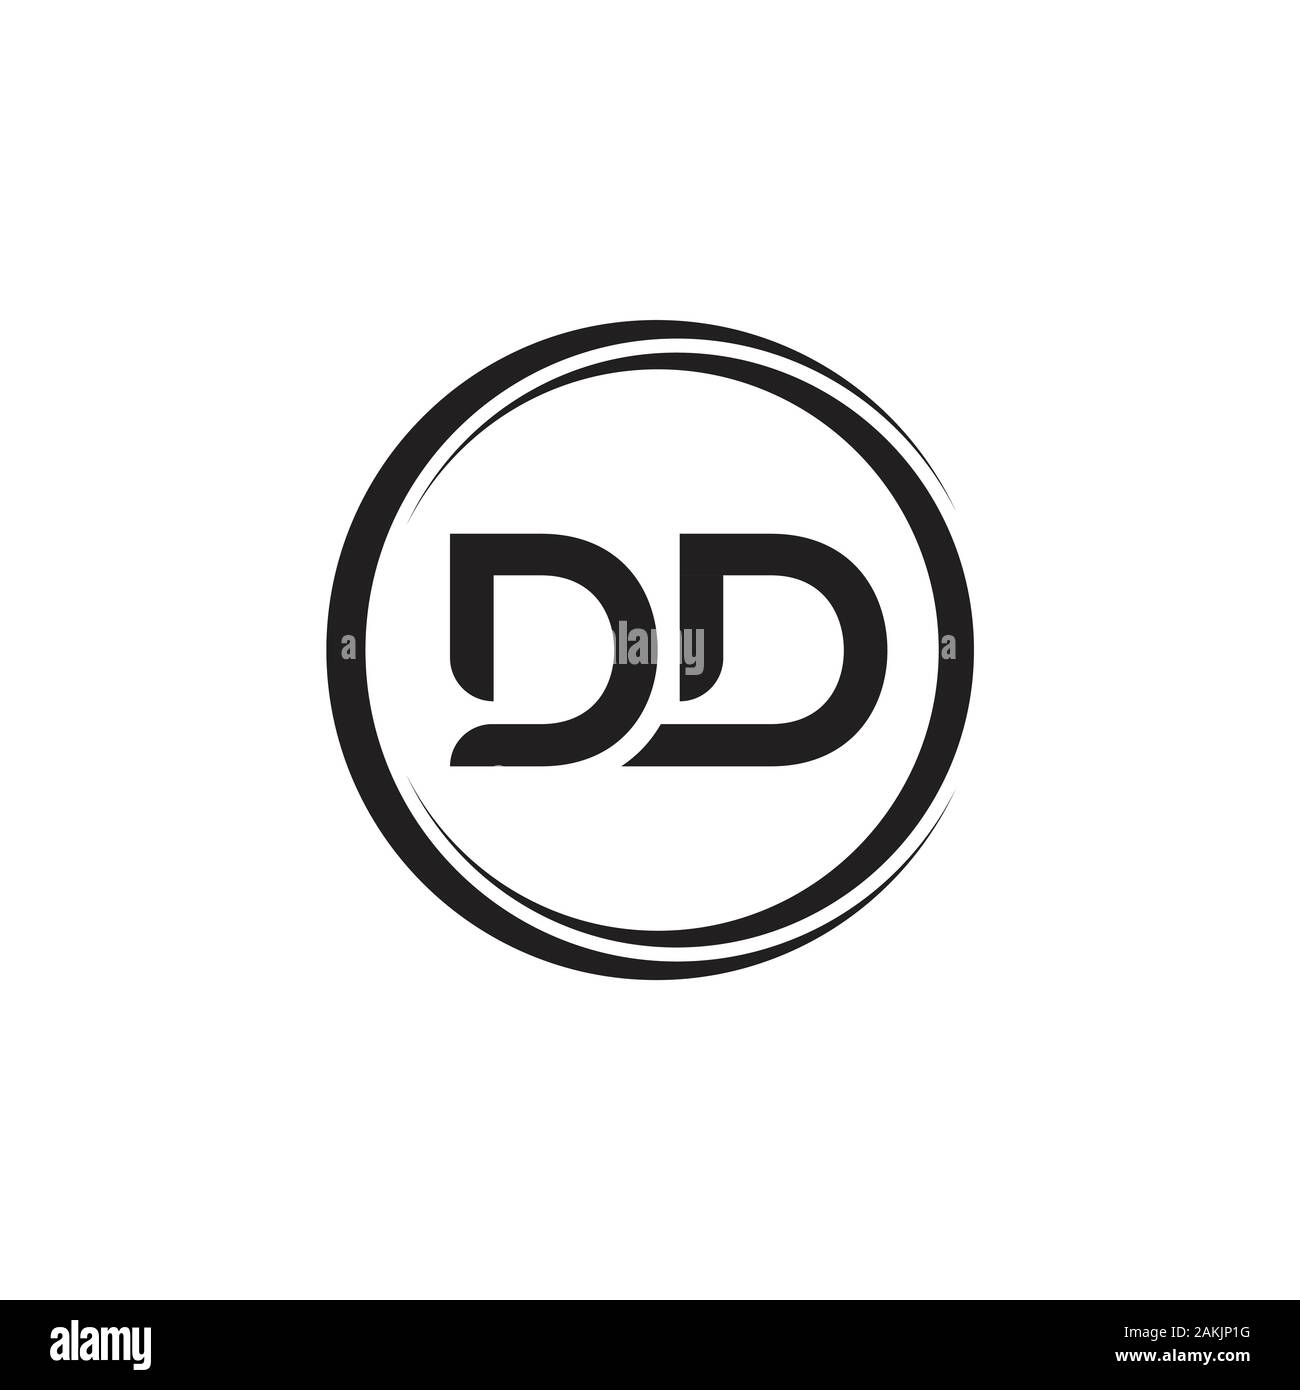 Initial DD Letter Logo With Creative Modern Business Typography Vector Template. Creative Abstract Letter DD Logo Vector. Stock Vector